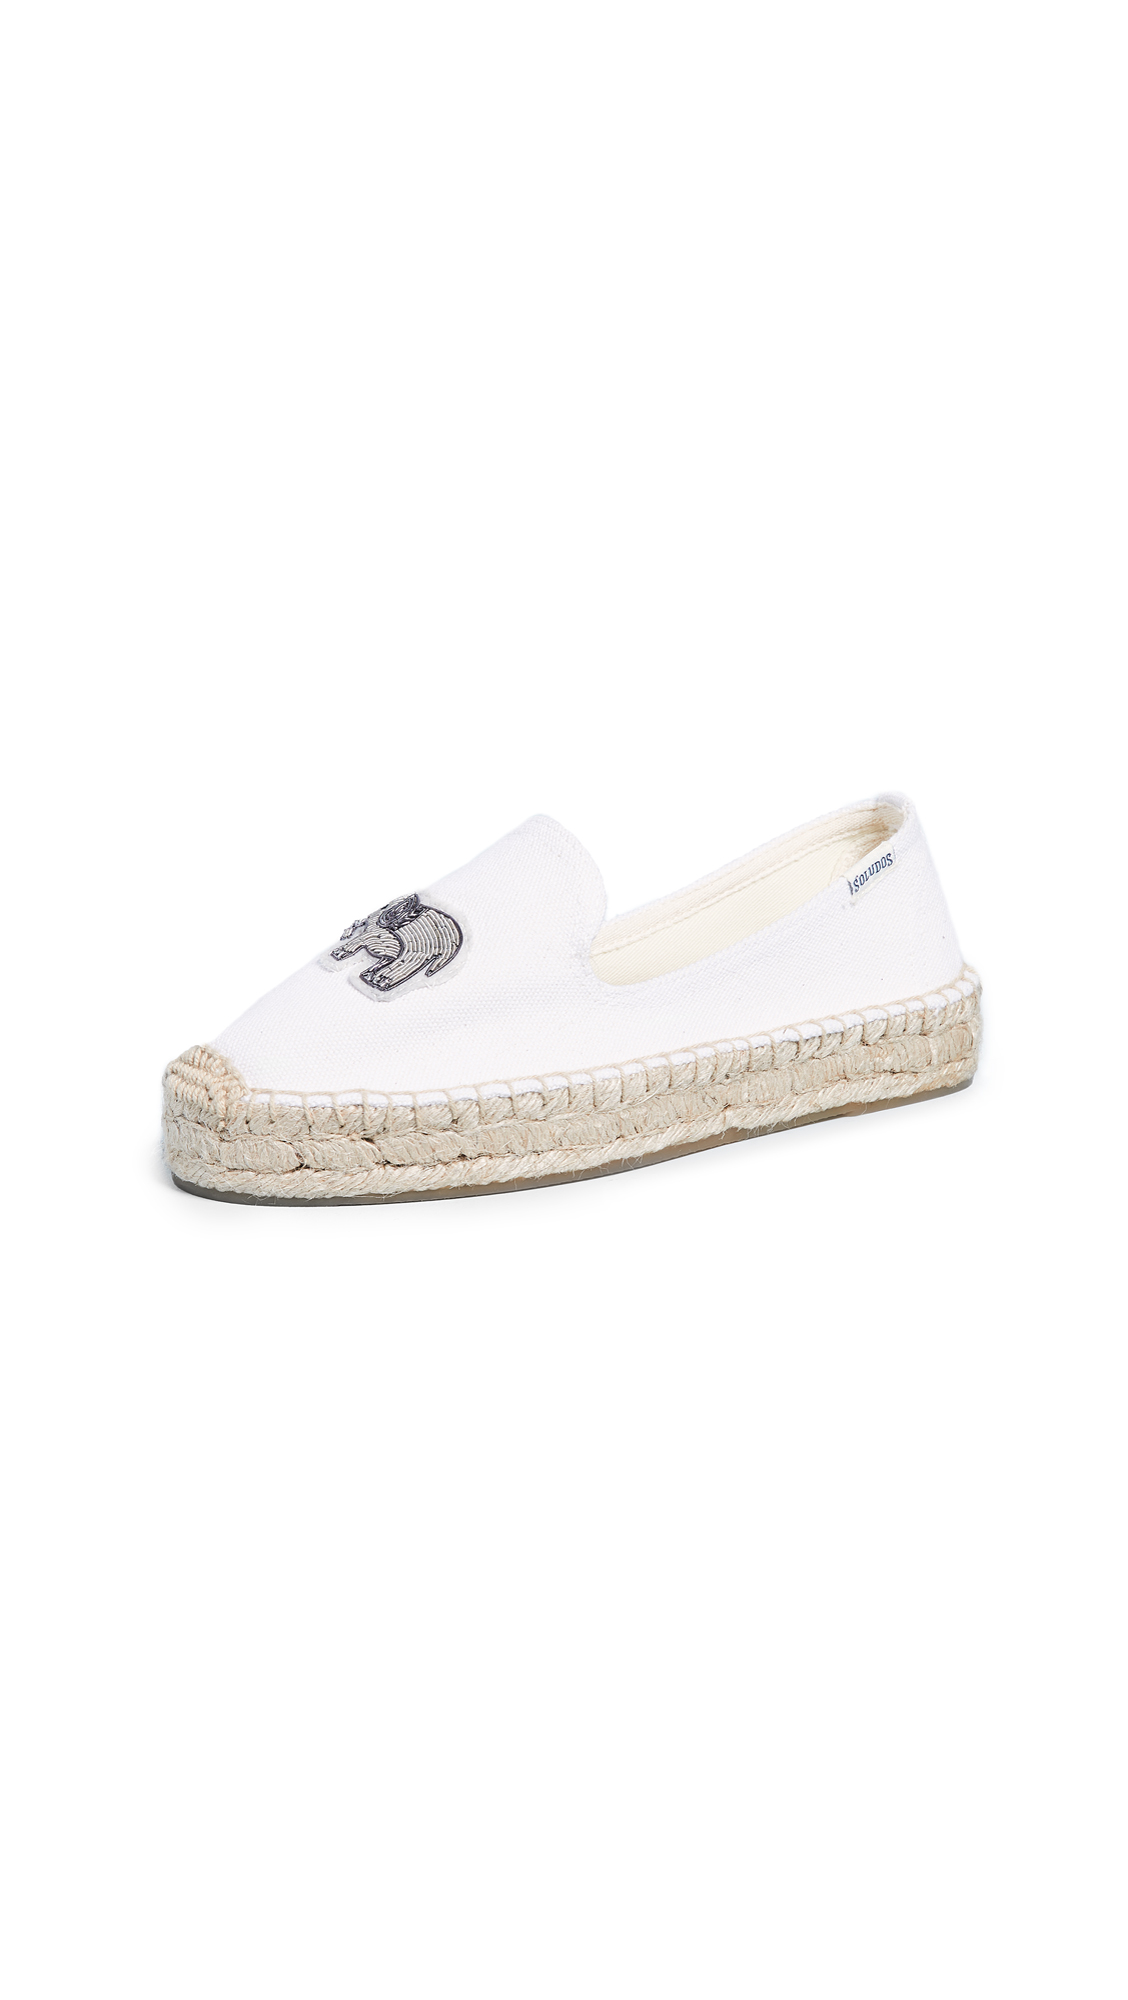 Soludos Elephant Beaded Smoking Slippers - White